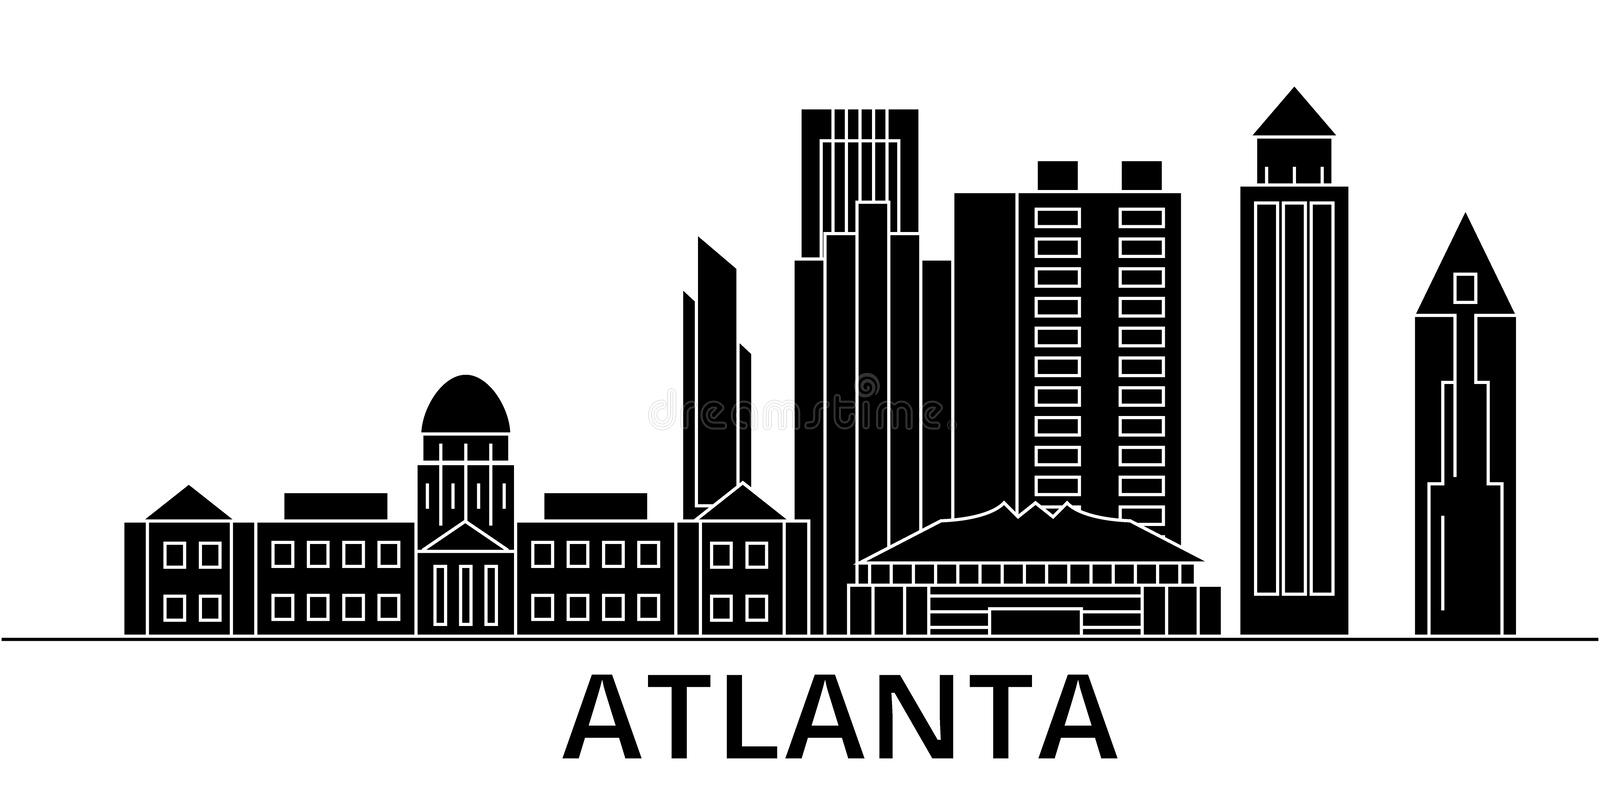 Atlanta architecture vector city skyline, travel cityscape with landmarks, buildings, isolated sights on background. Atlanta architecture vector city skyline royalty free illustration